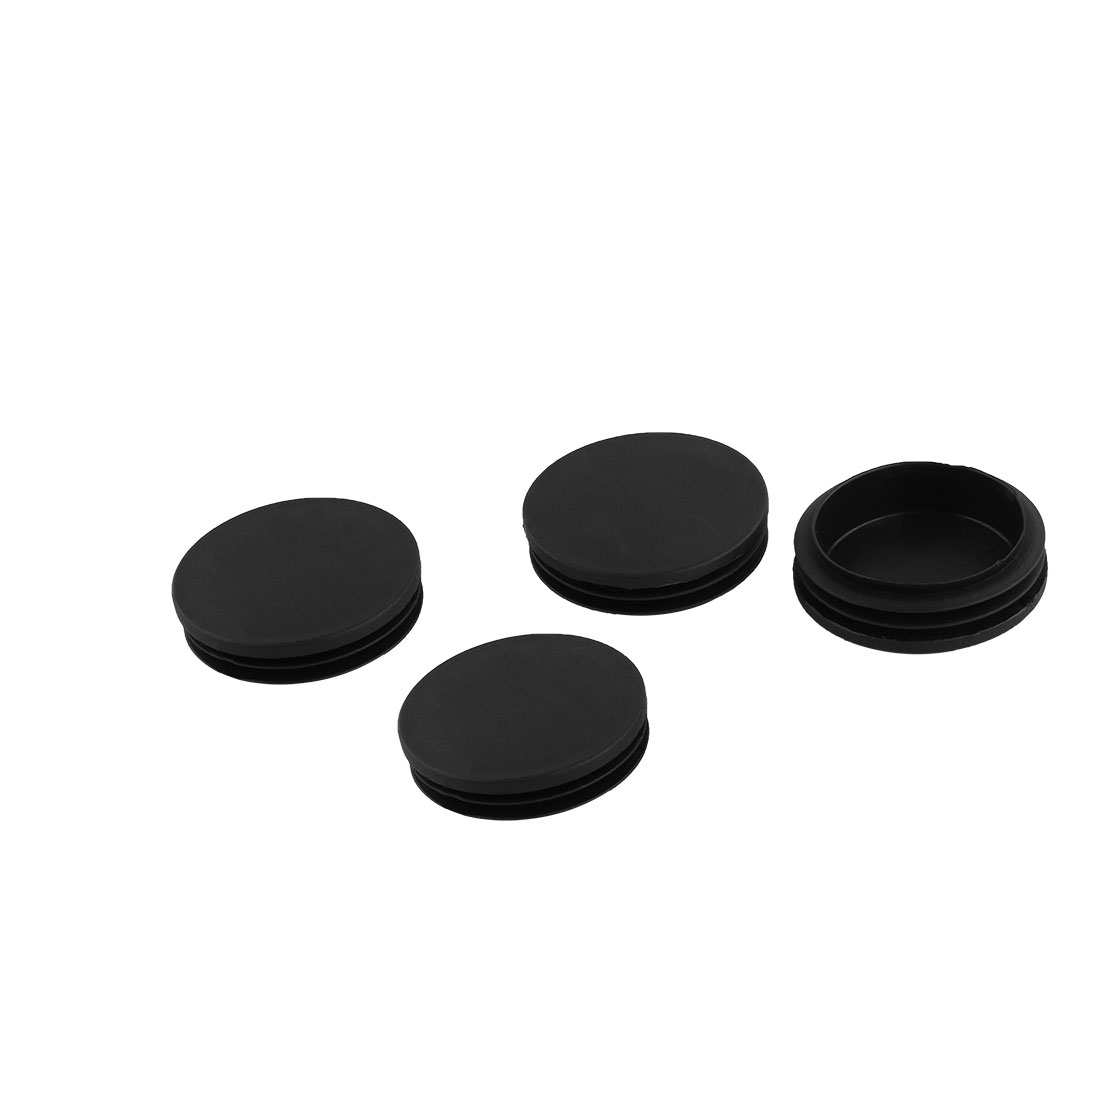 Furniture Foot Plastic Flat Base Round Tube Insert Cover Black 64mm Dia 4pcs